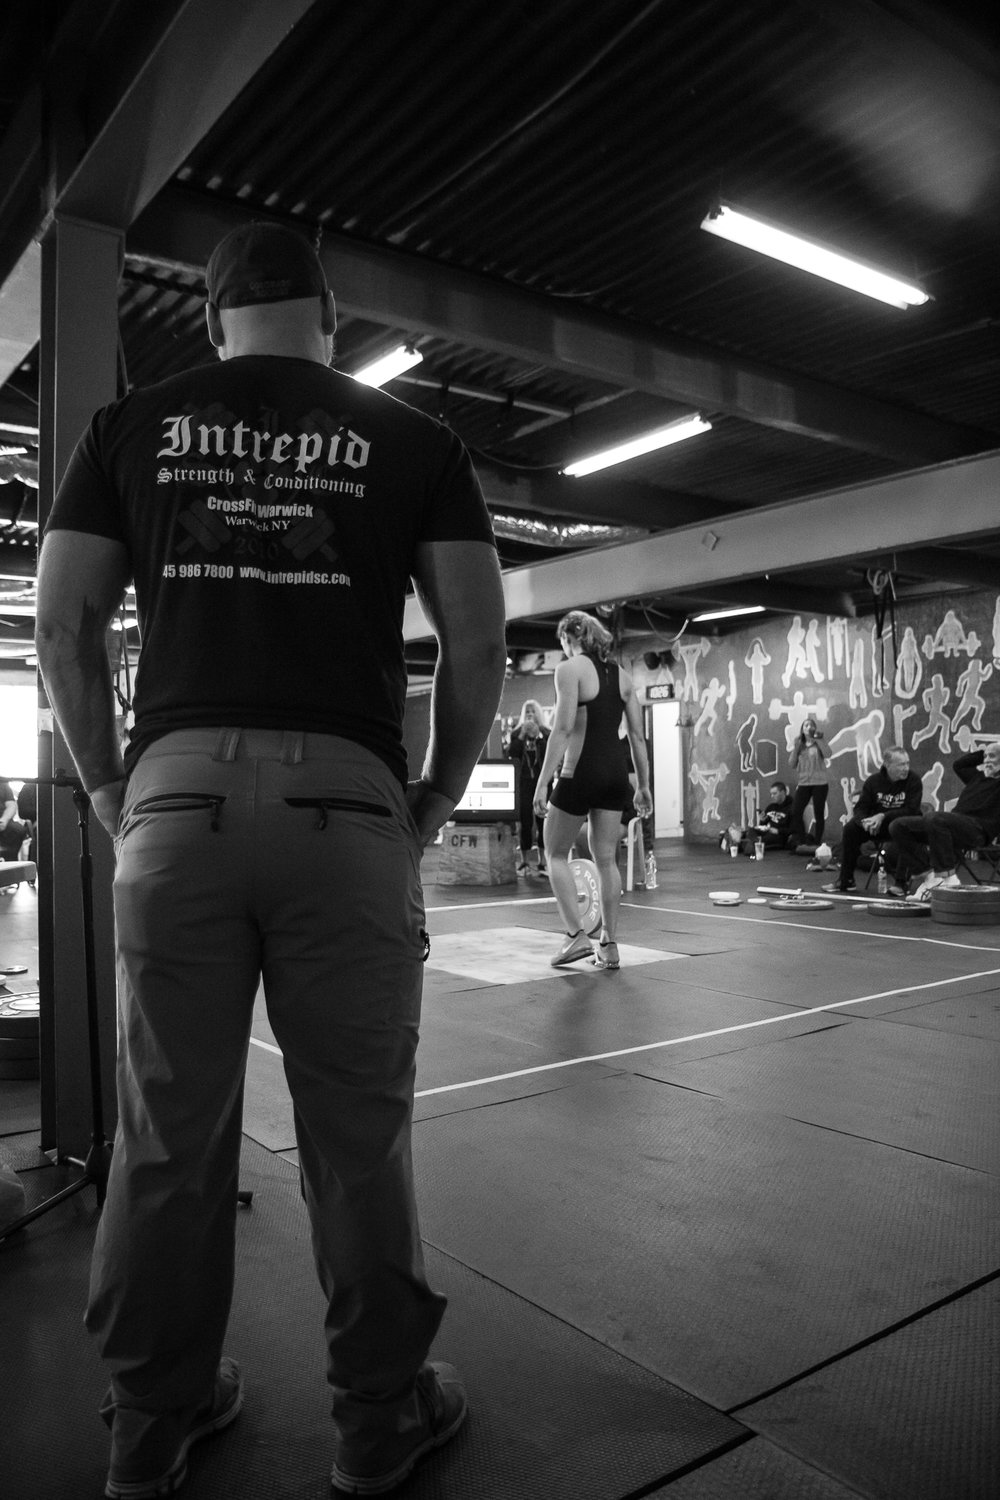 warwick-new-york-intrepid-strength-conditioning-winter-open-weightlifting-meet-weightlifting-photography (7 of 15).jpg